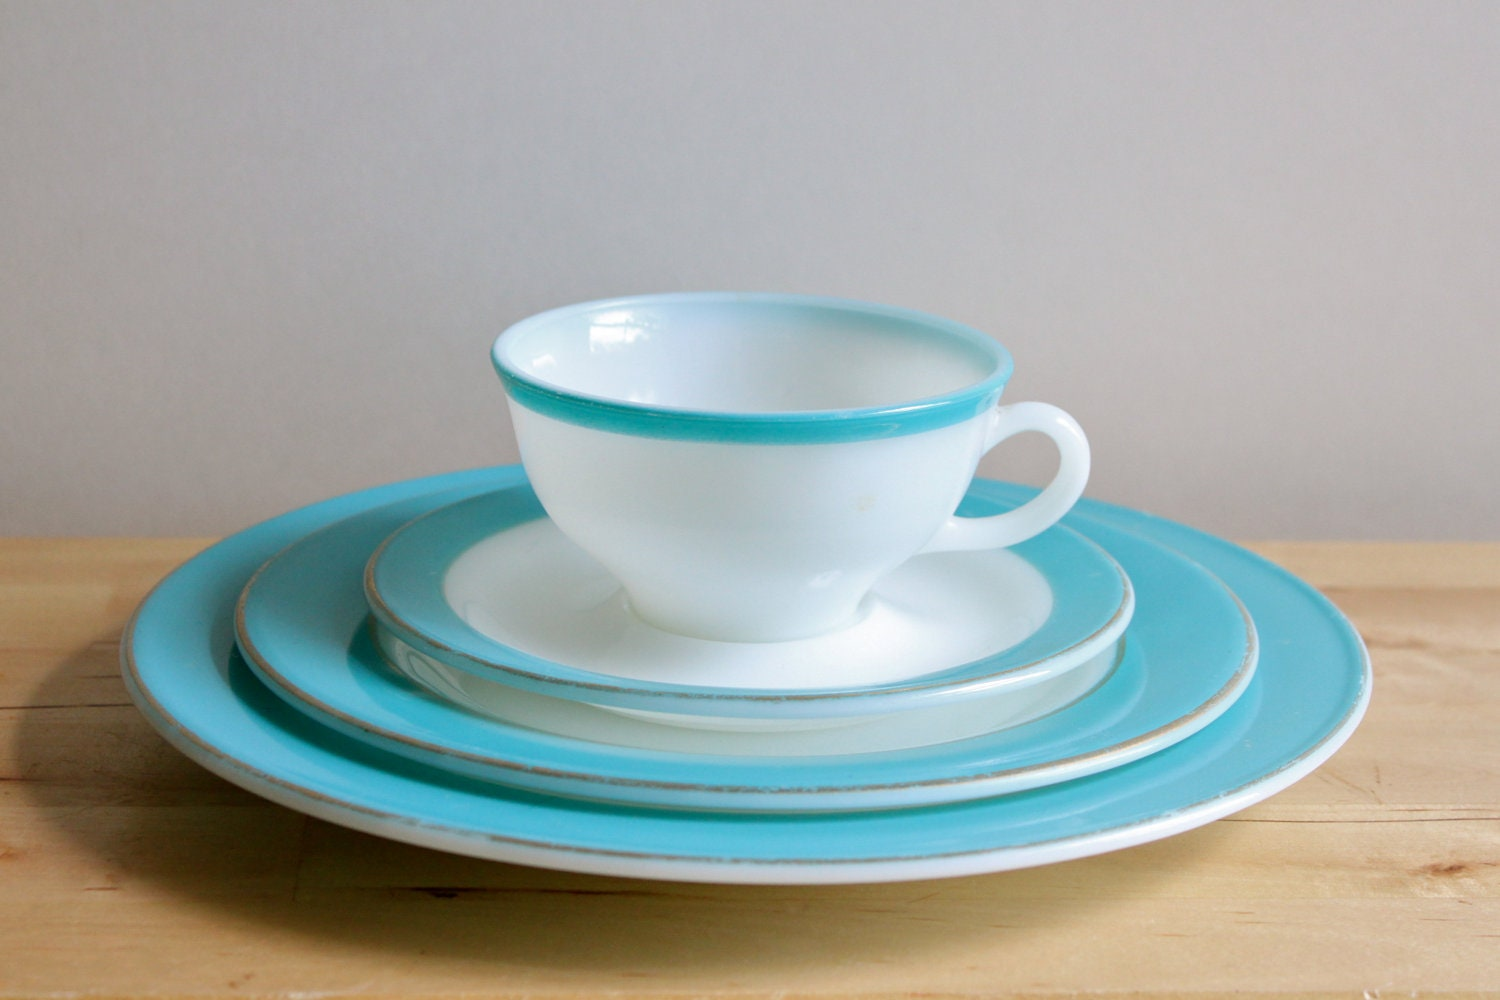 Turquoise Pyrex Dishes Vintage 1950s by KitchenCulinaria on Etsy